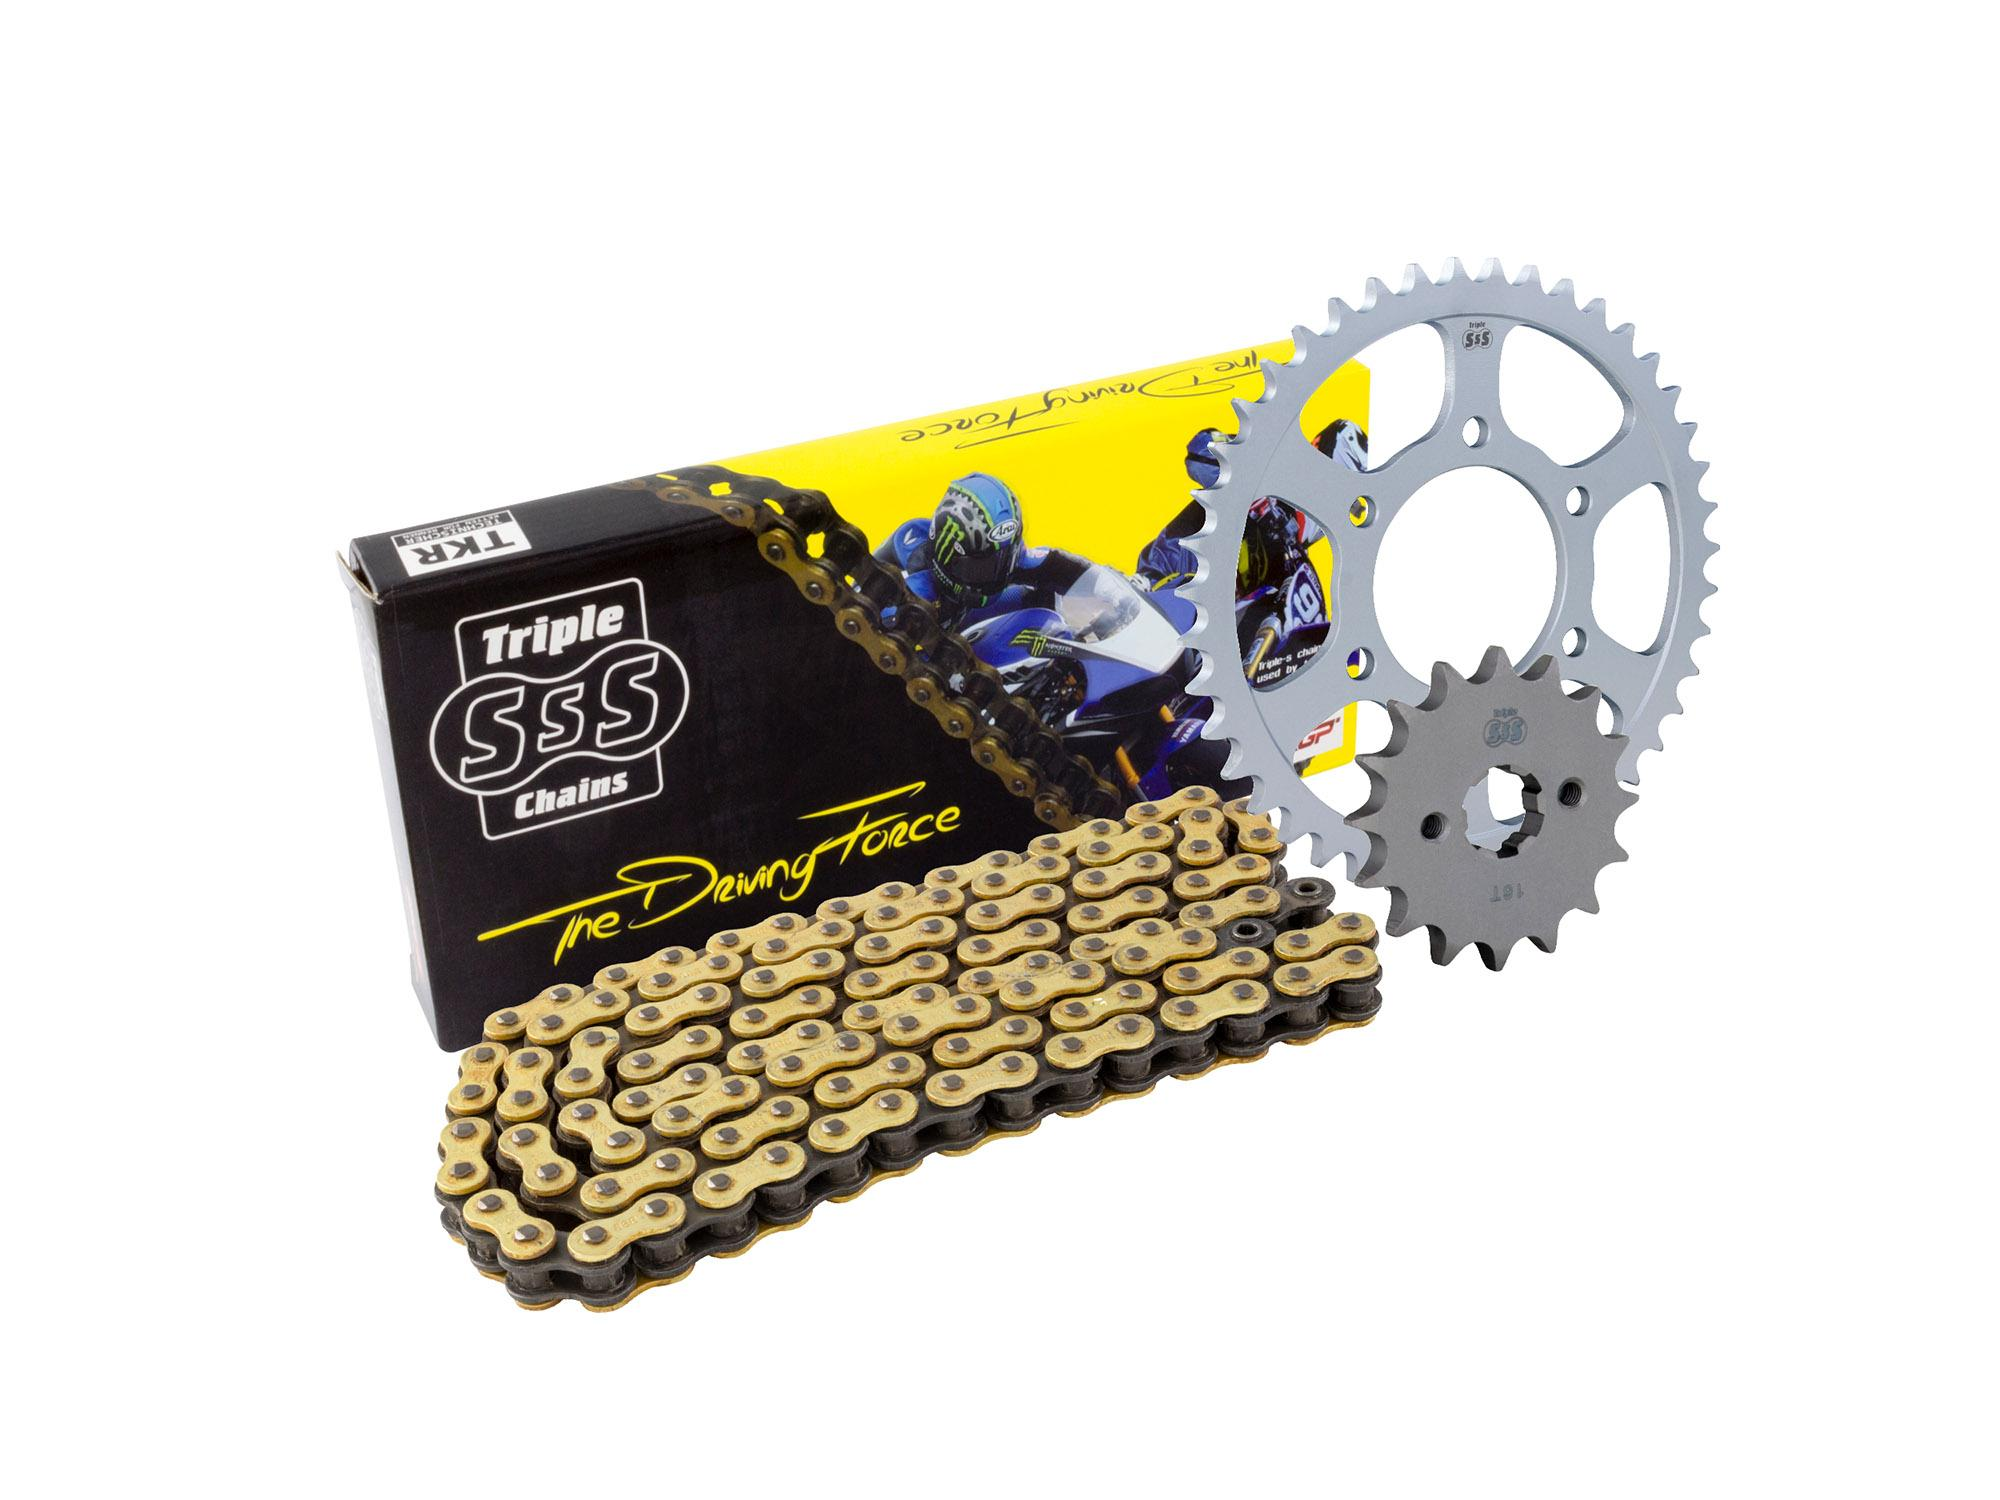 Kawasaki ZZ-R1100 D6-D7 98-99 Chain & Sprocket Kit: 17T Front, 44T Rear, HD O-Ring Gold Chain 530H 110 Link